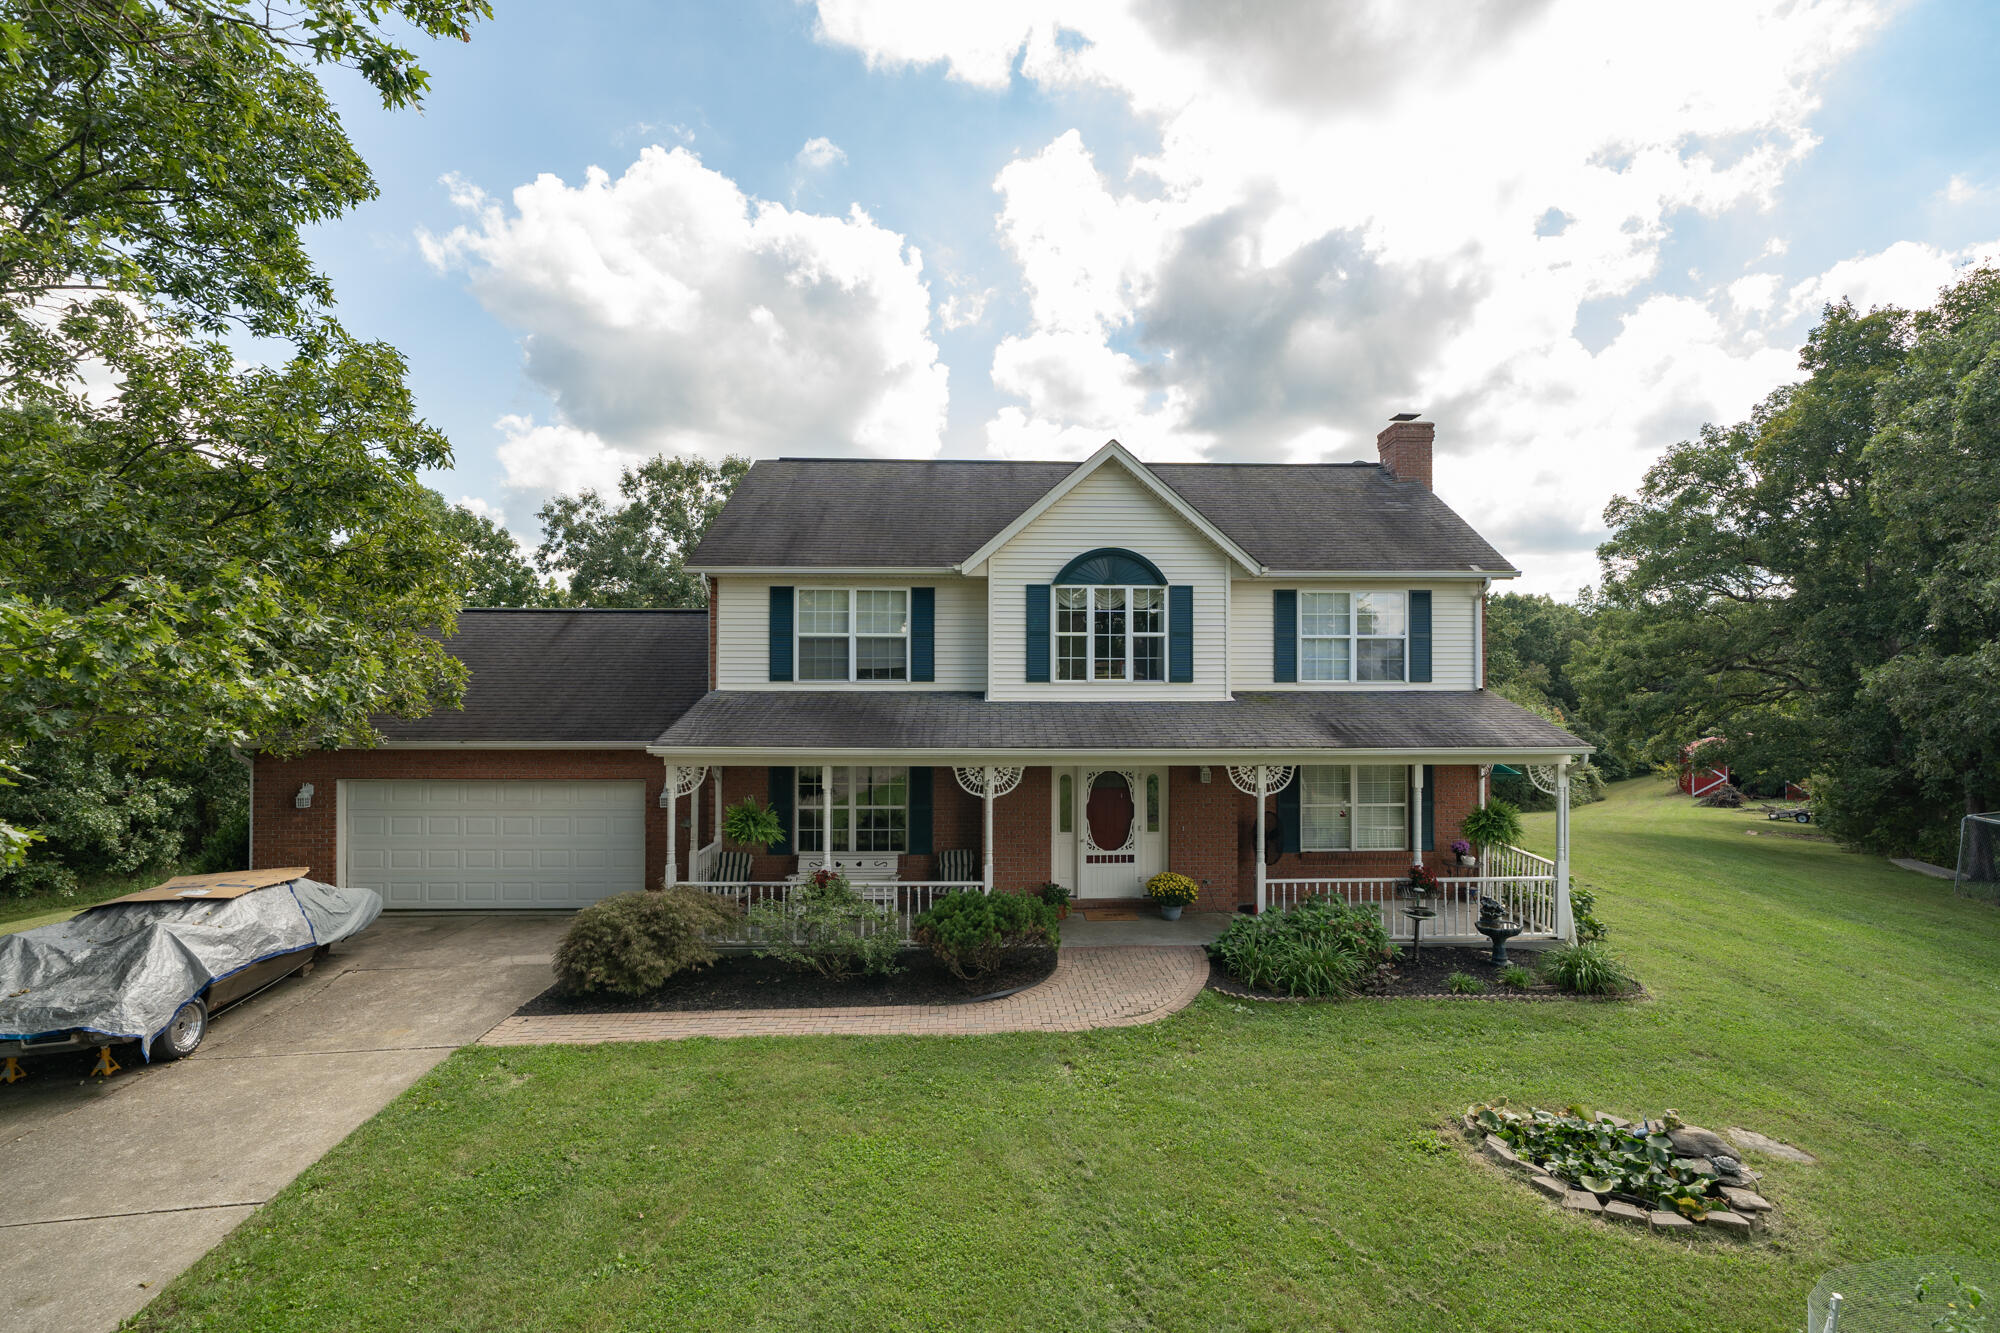 10807 KY Highway 36 W, Berry, KY 41003